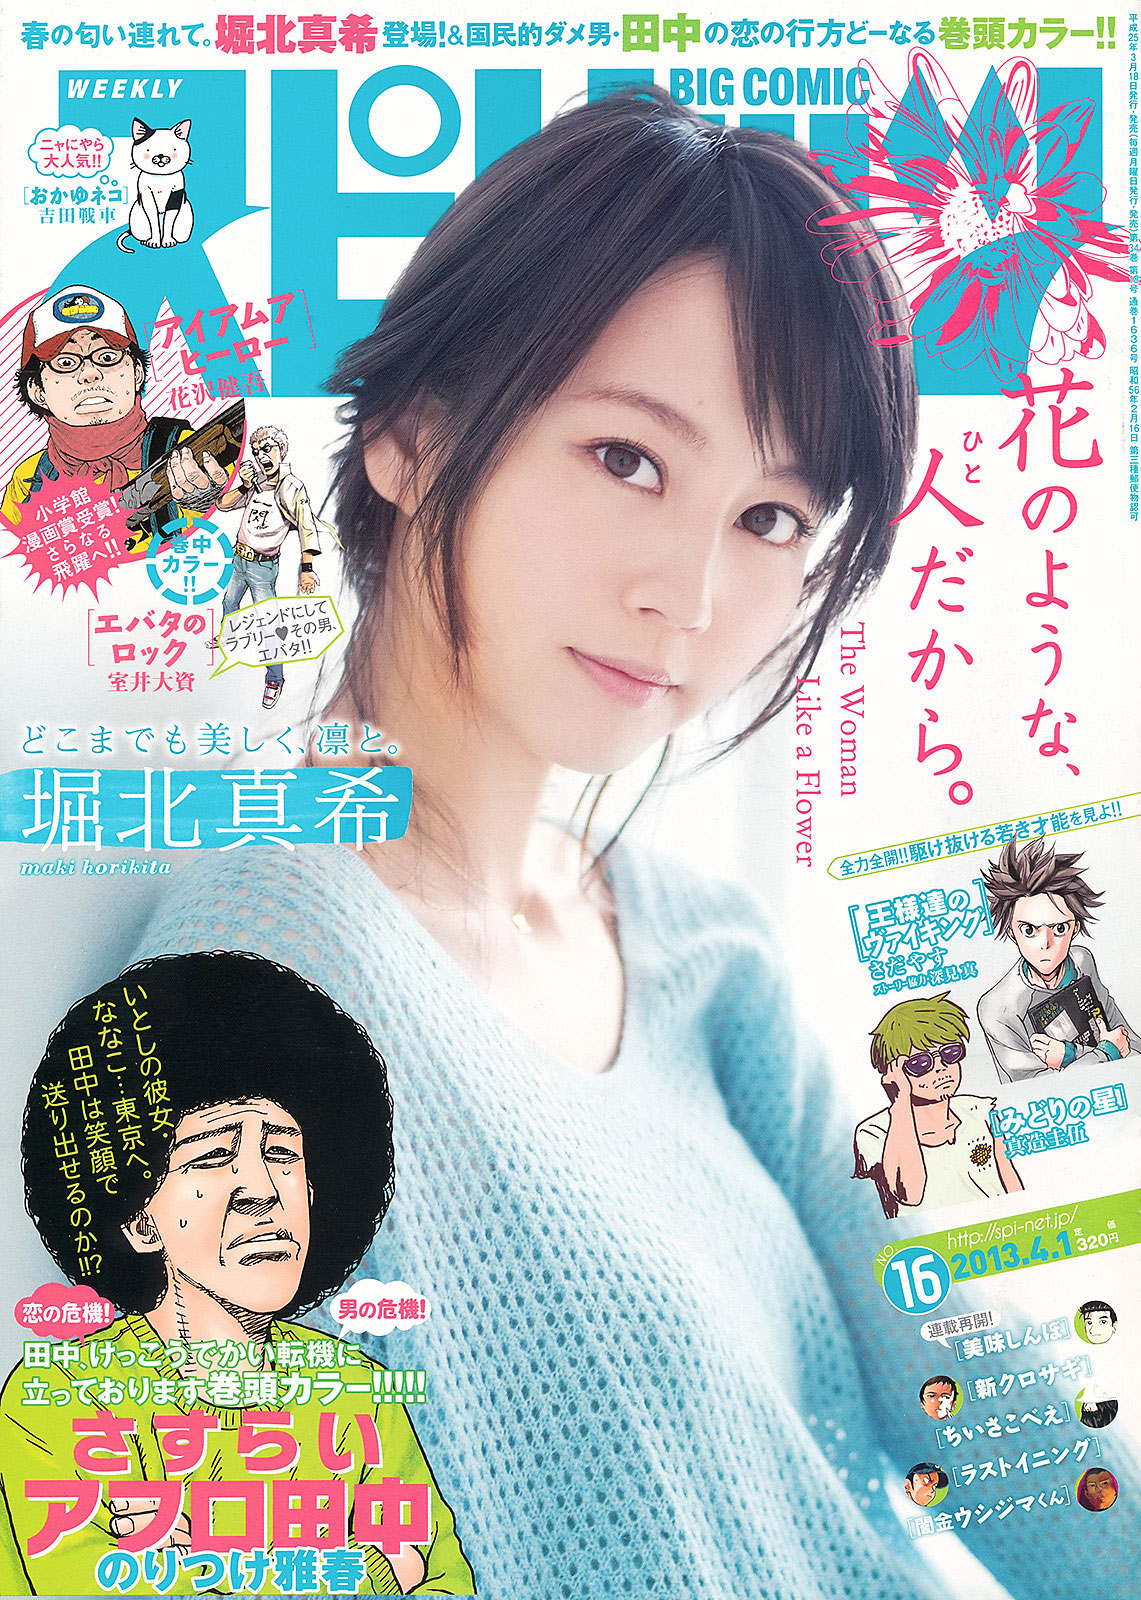 Maki Horikita Weekly Big Comic Spirits